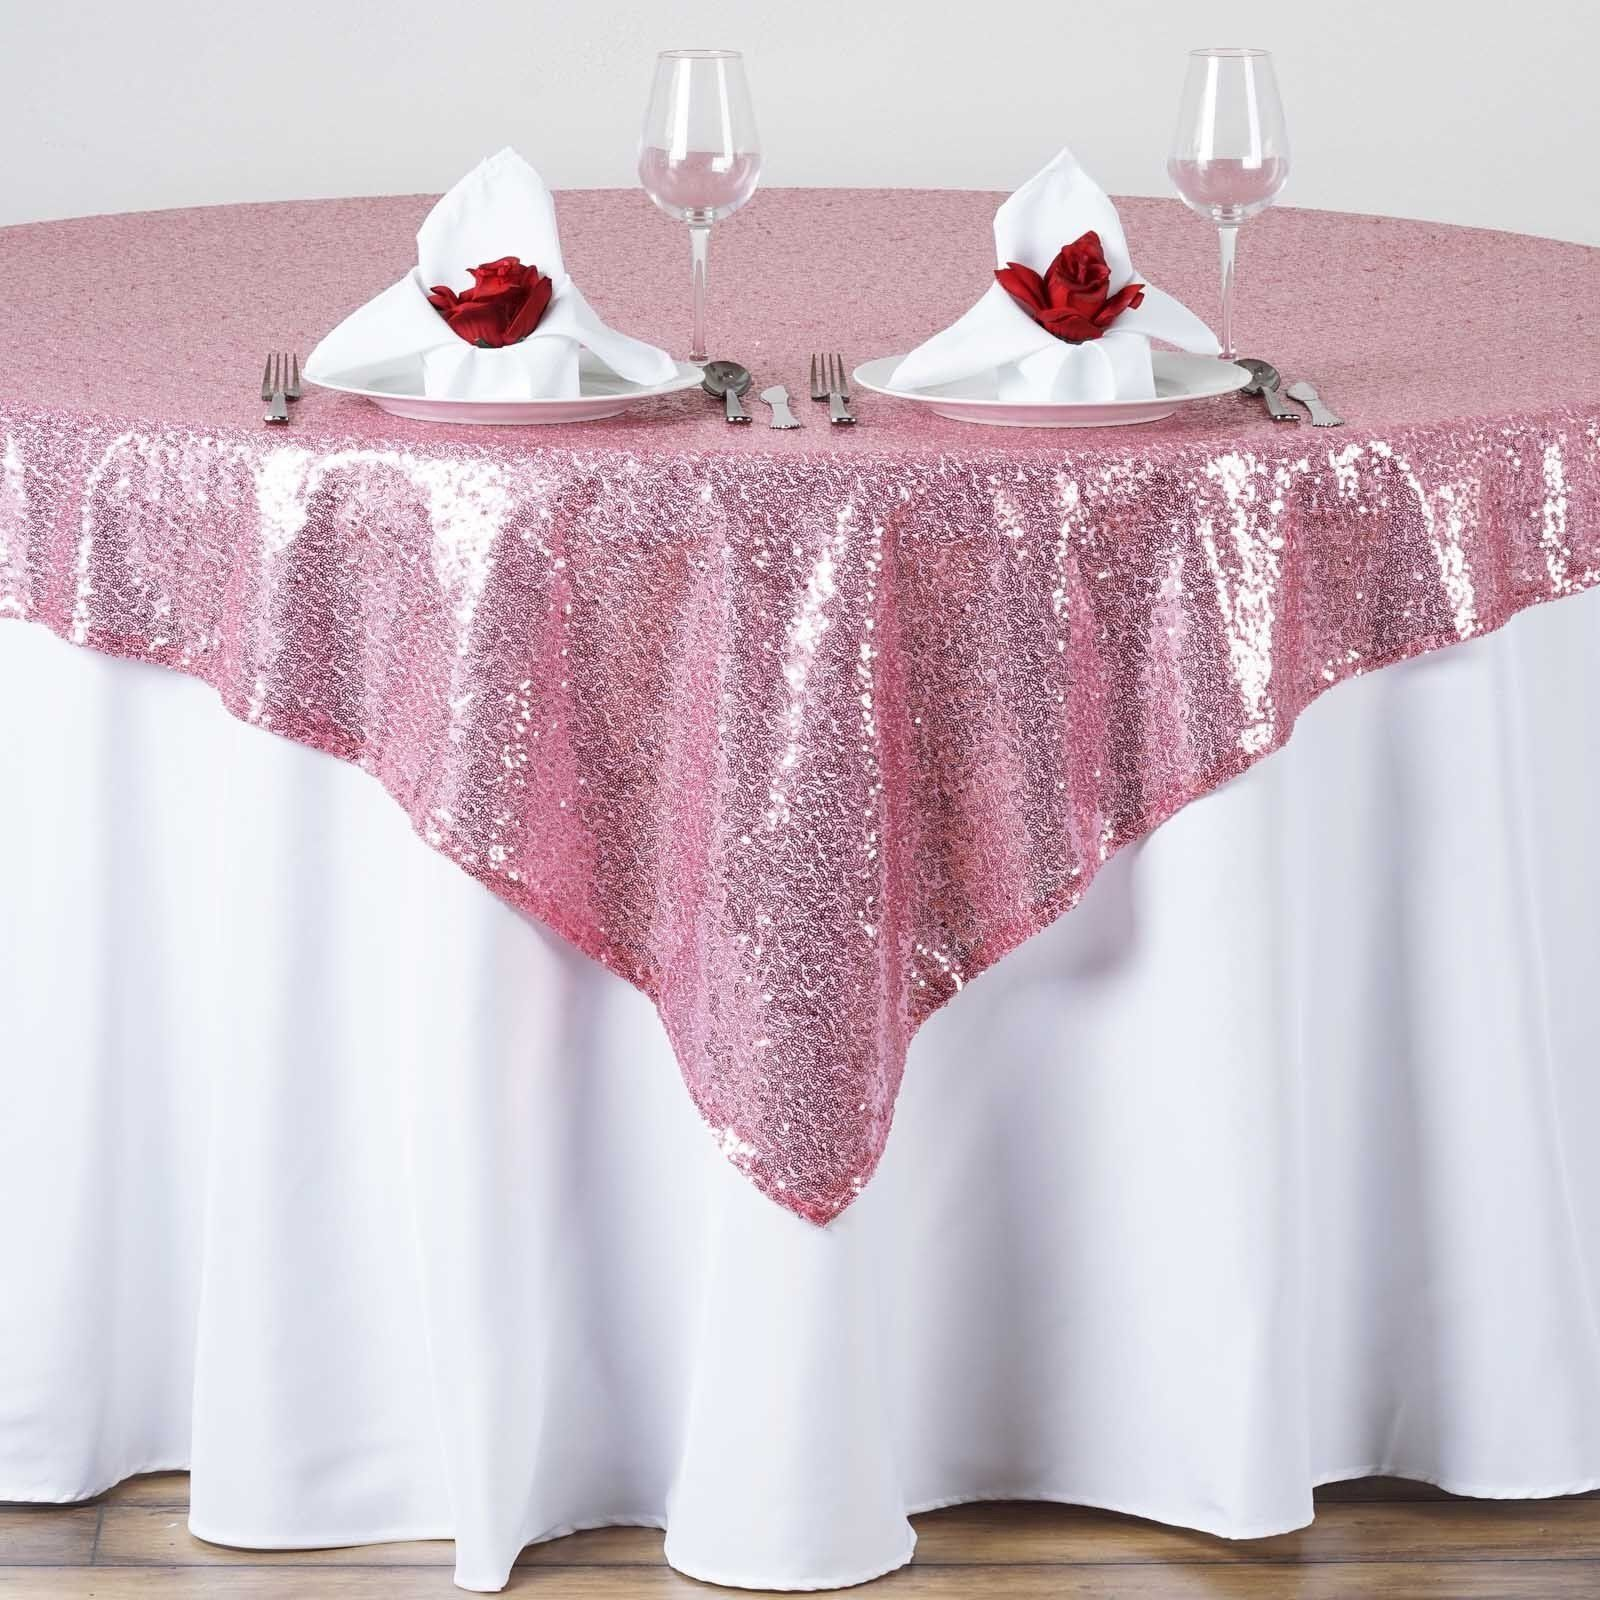 15 Sequin Table Overlay 54x54  inch Sparkly Tablecloth 3 FarbeS Wedding Cake USA